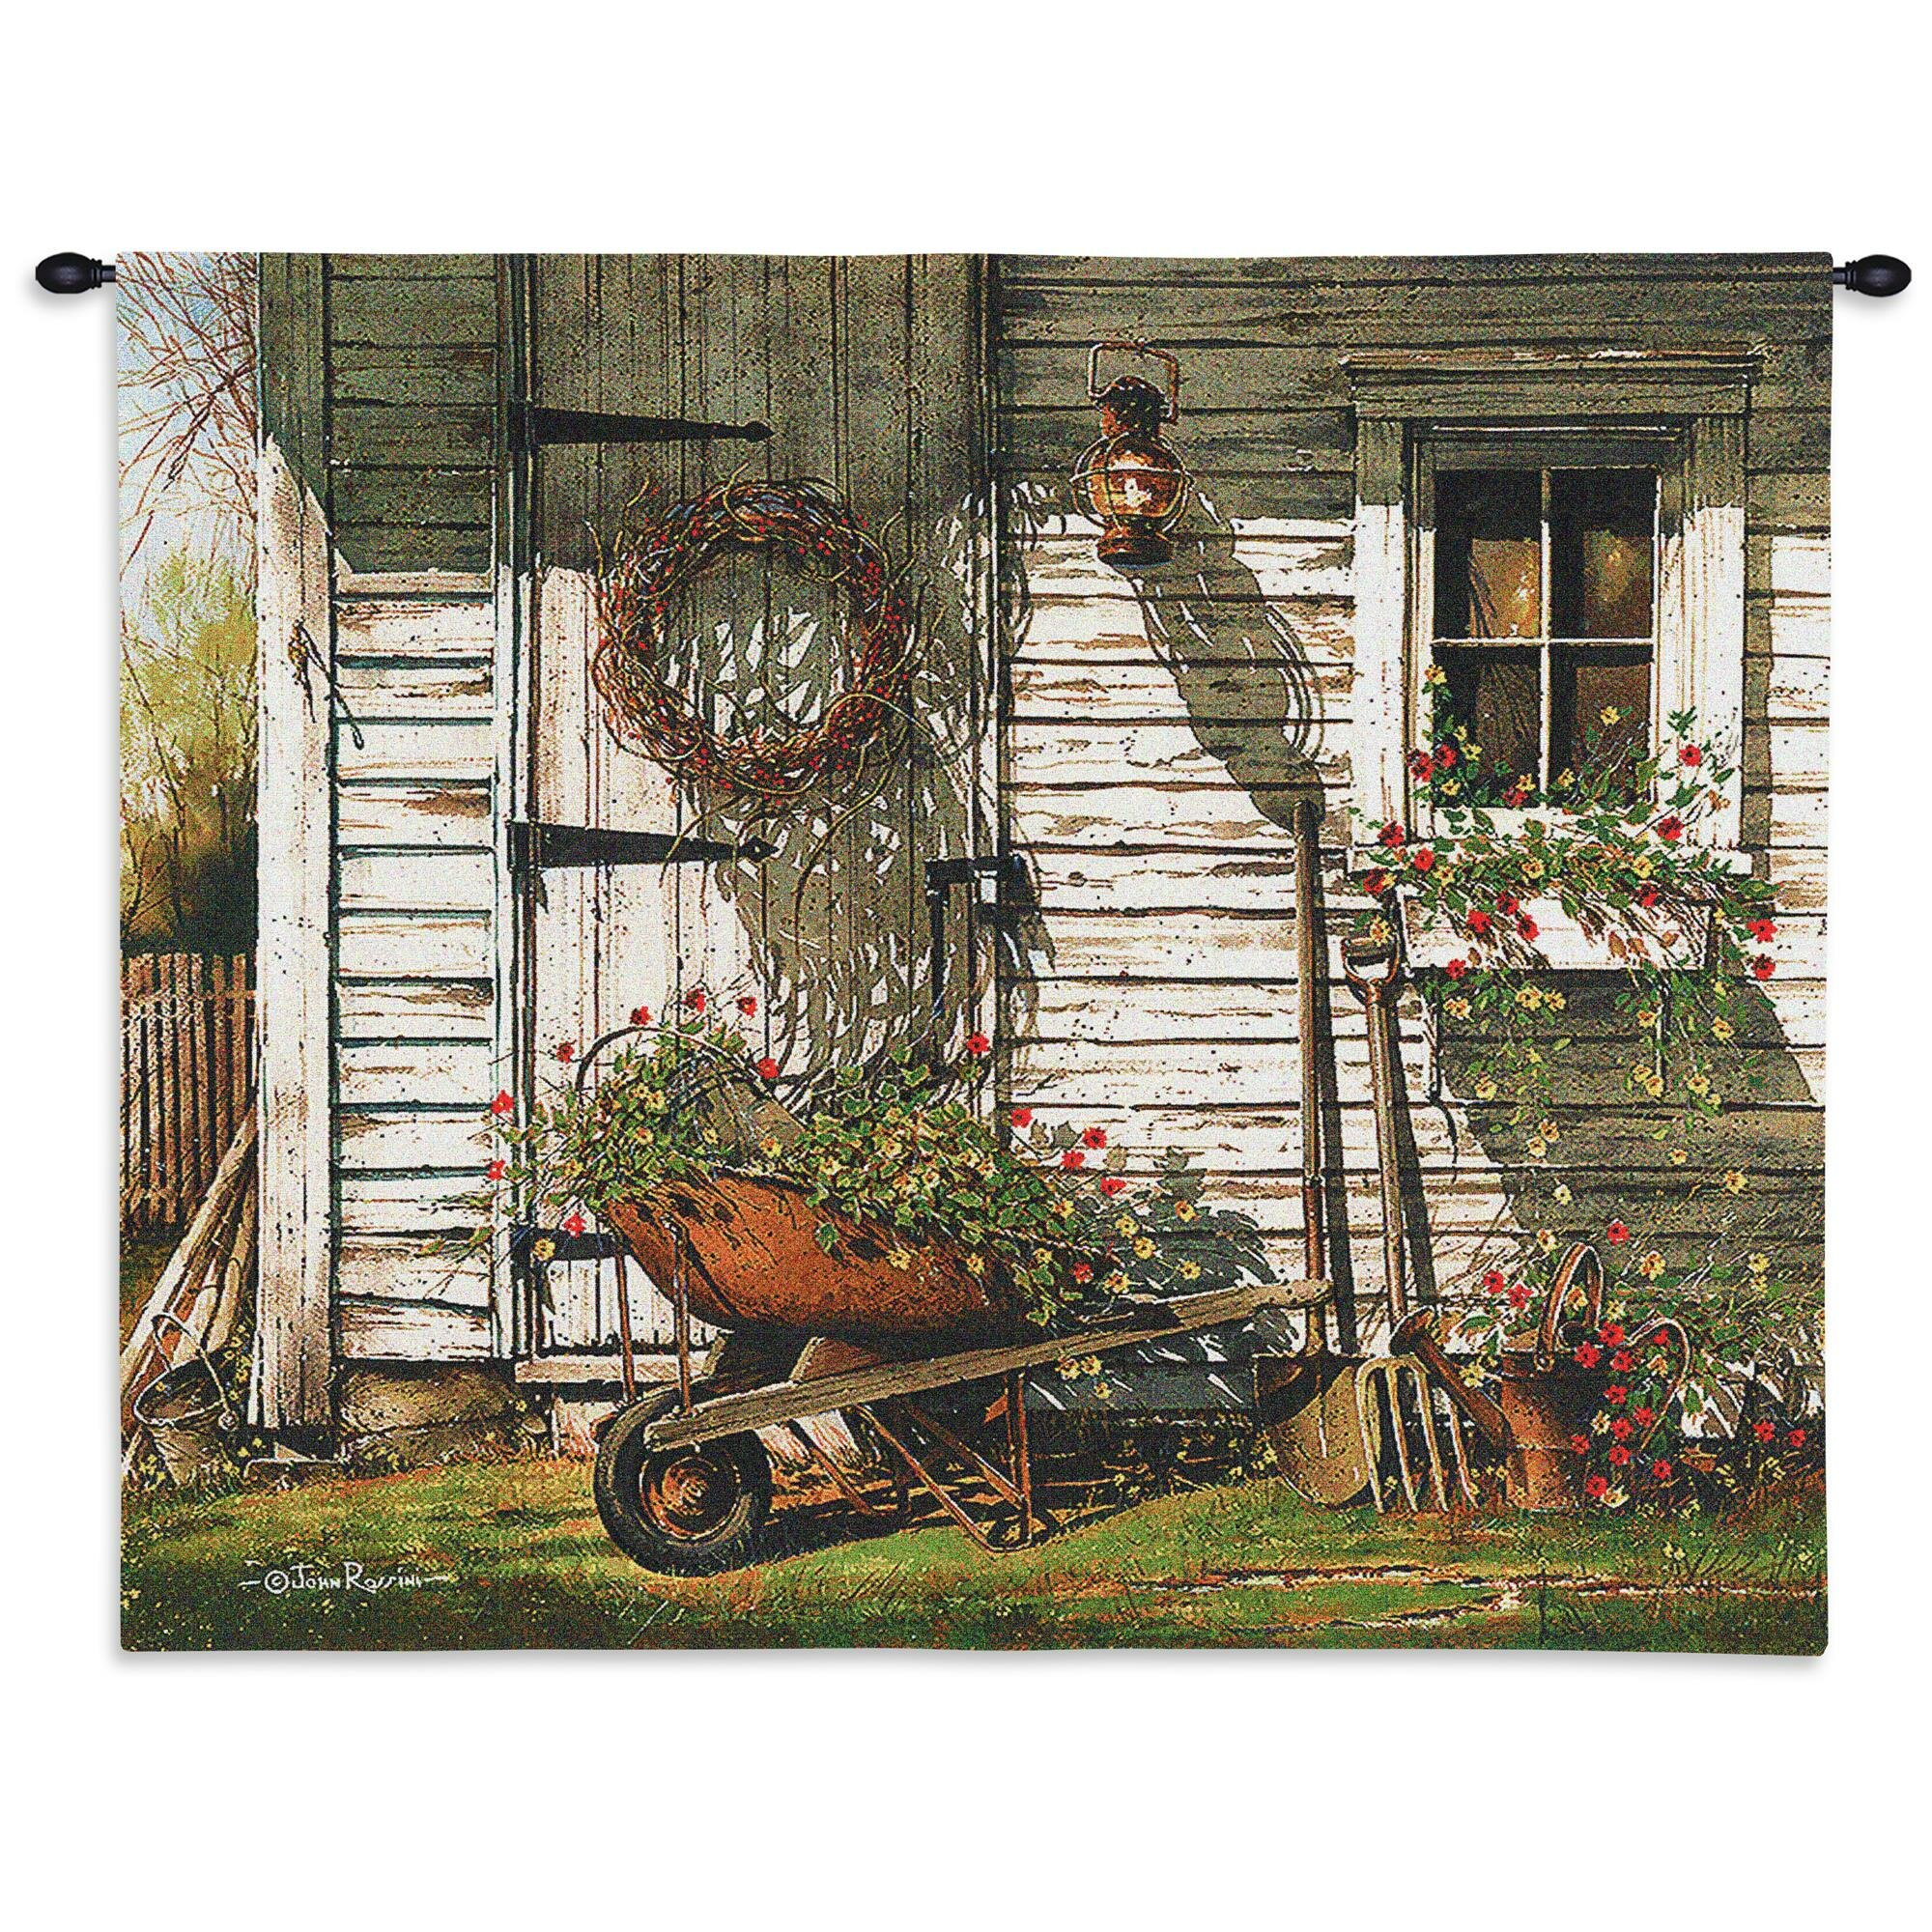 Spring Cleaning Tapestry Pertaining To Most Up To Date Blended Fabric Bellagio Scalinata Wall Hangings (View 15 of 20)